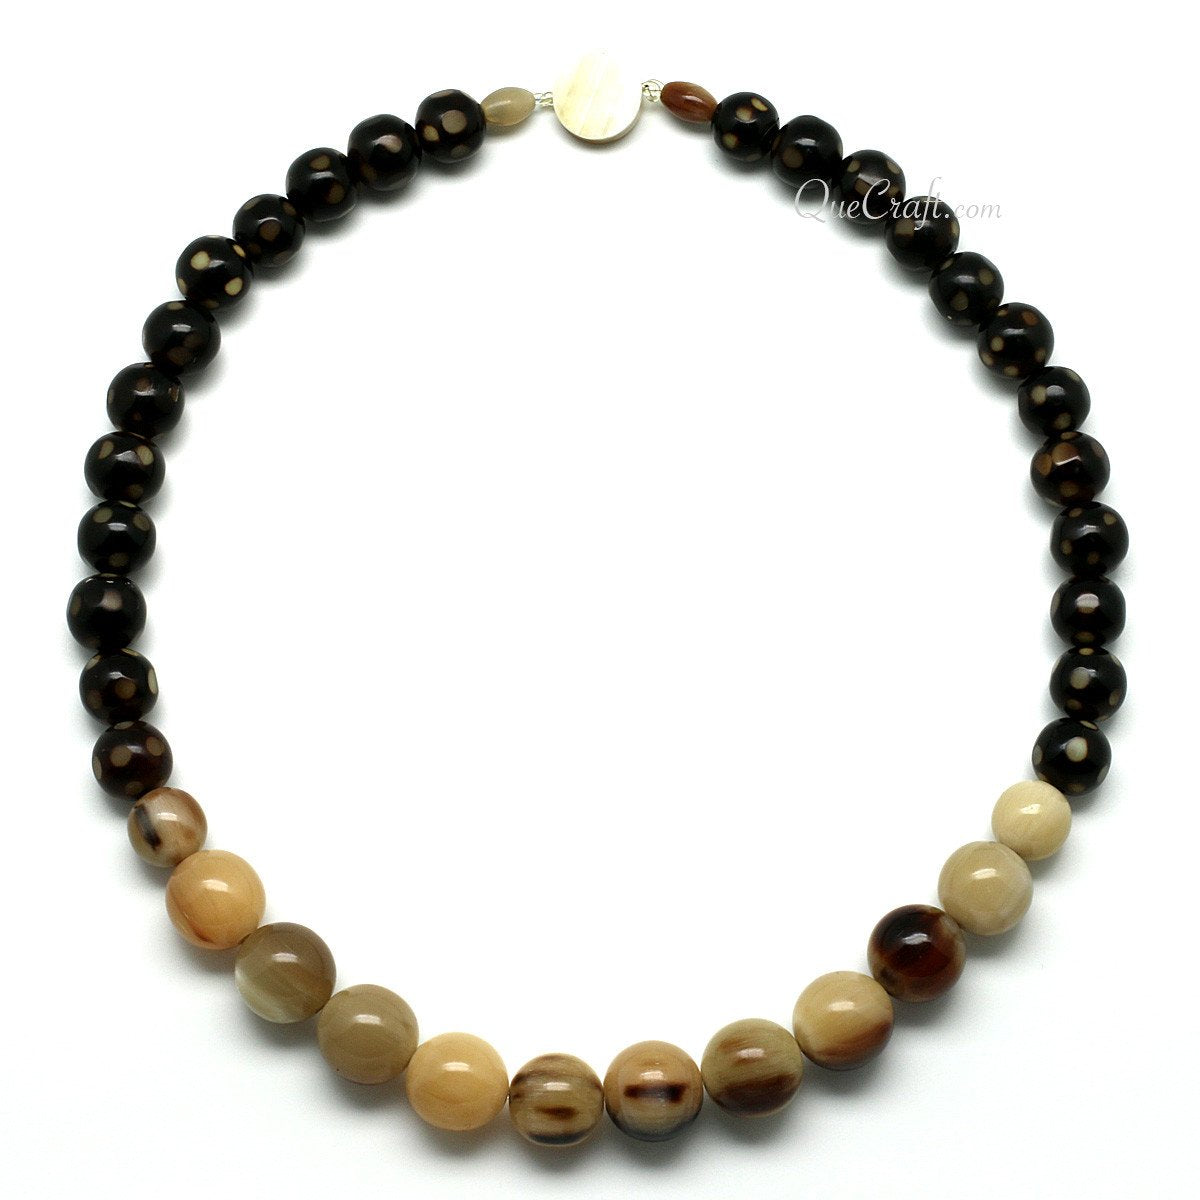 Horn Beaded Necklace #11484 - HORN.JEWELRY by QueCraft